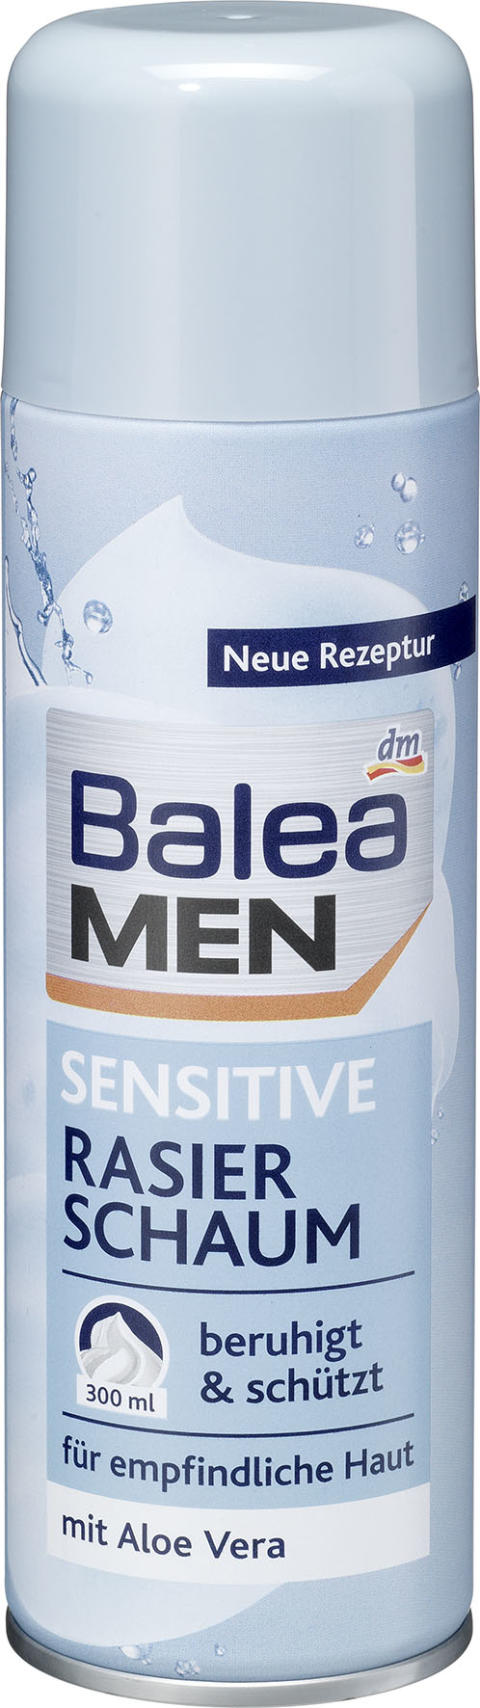 Balea MEN Sensitive Rasierschaum